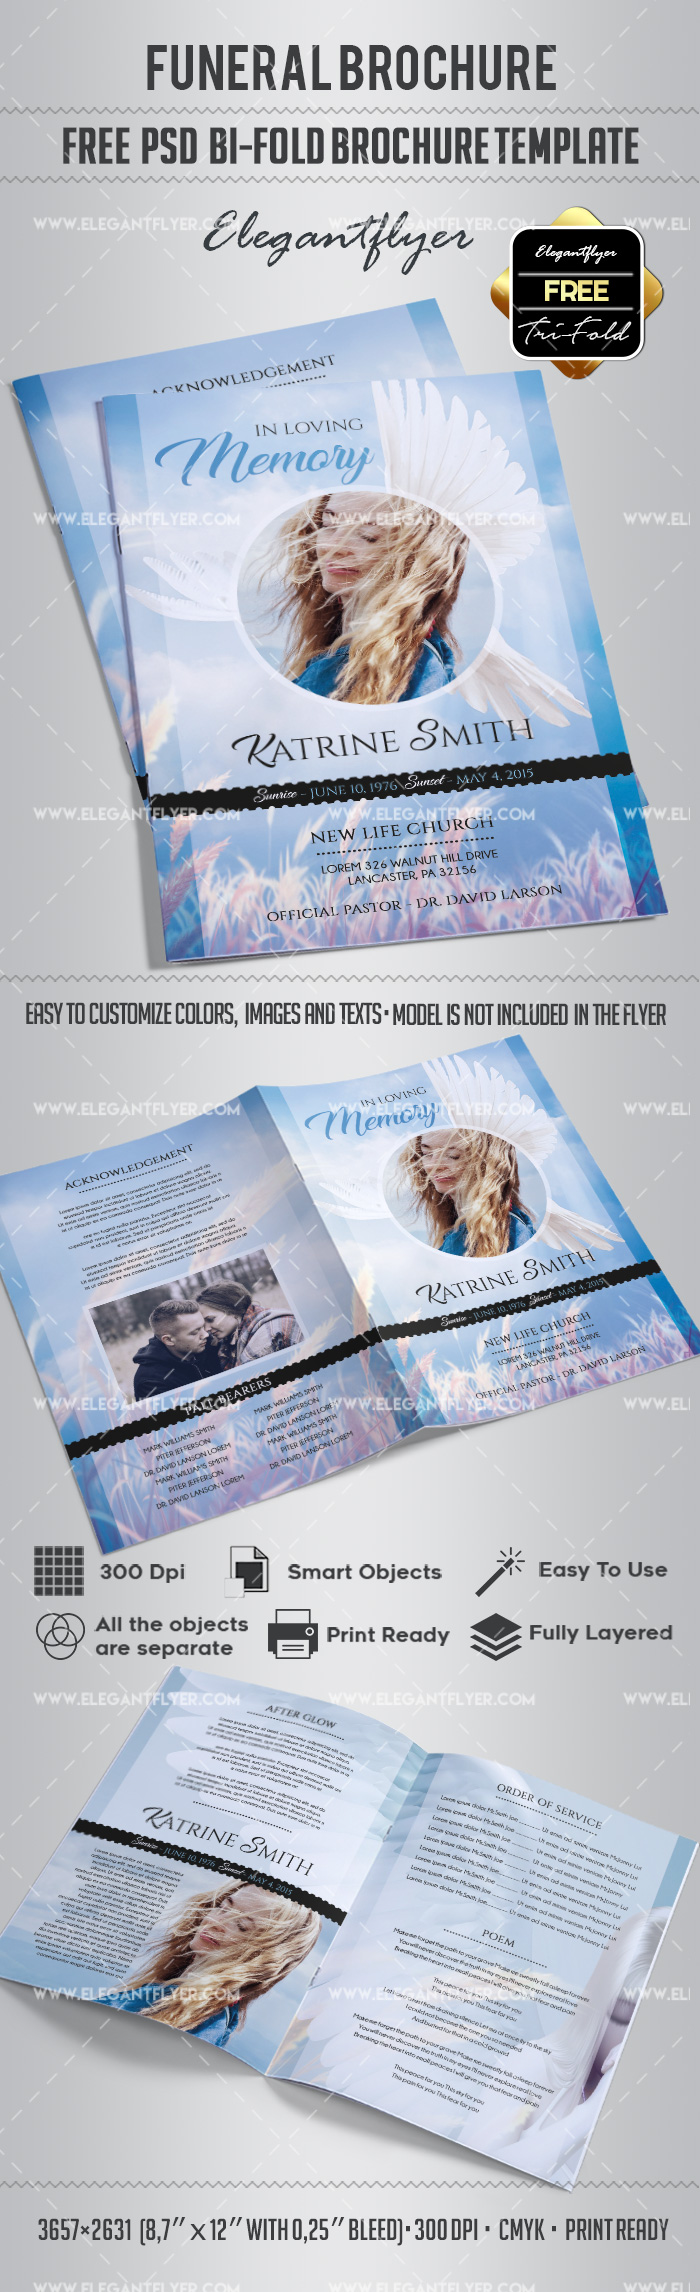 Free funeral bi fold brochure by elegantflyer for Psd template brochure